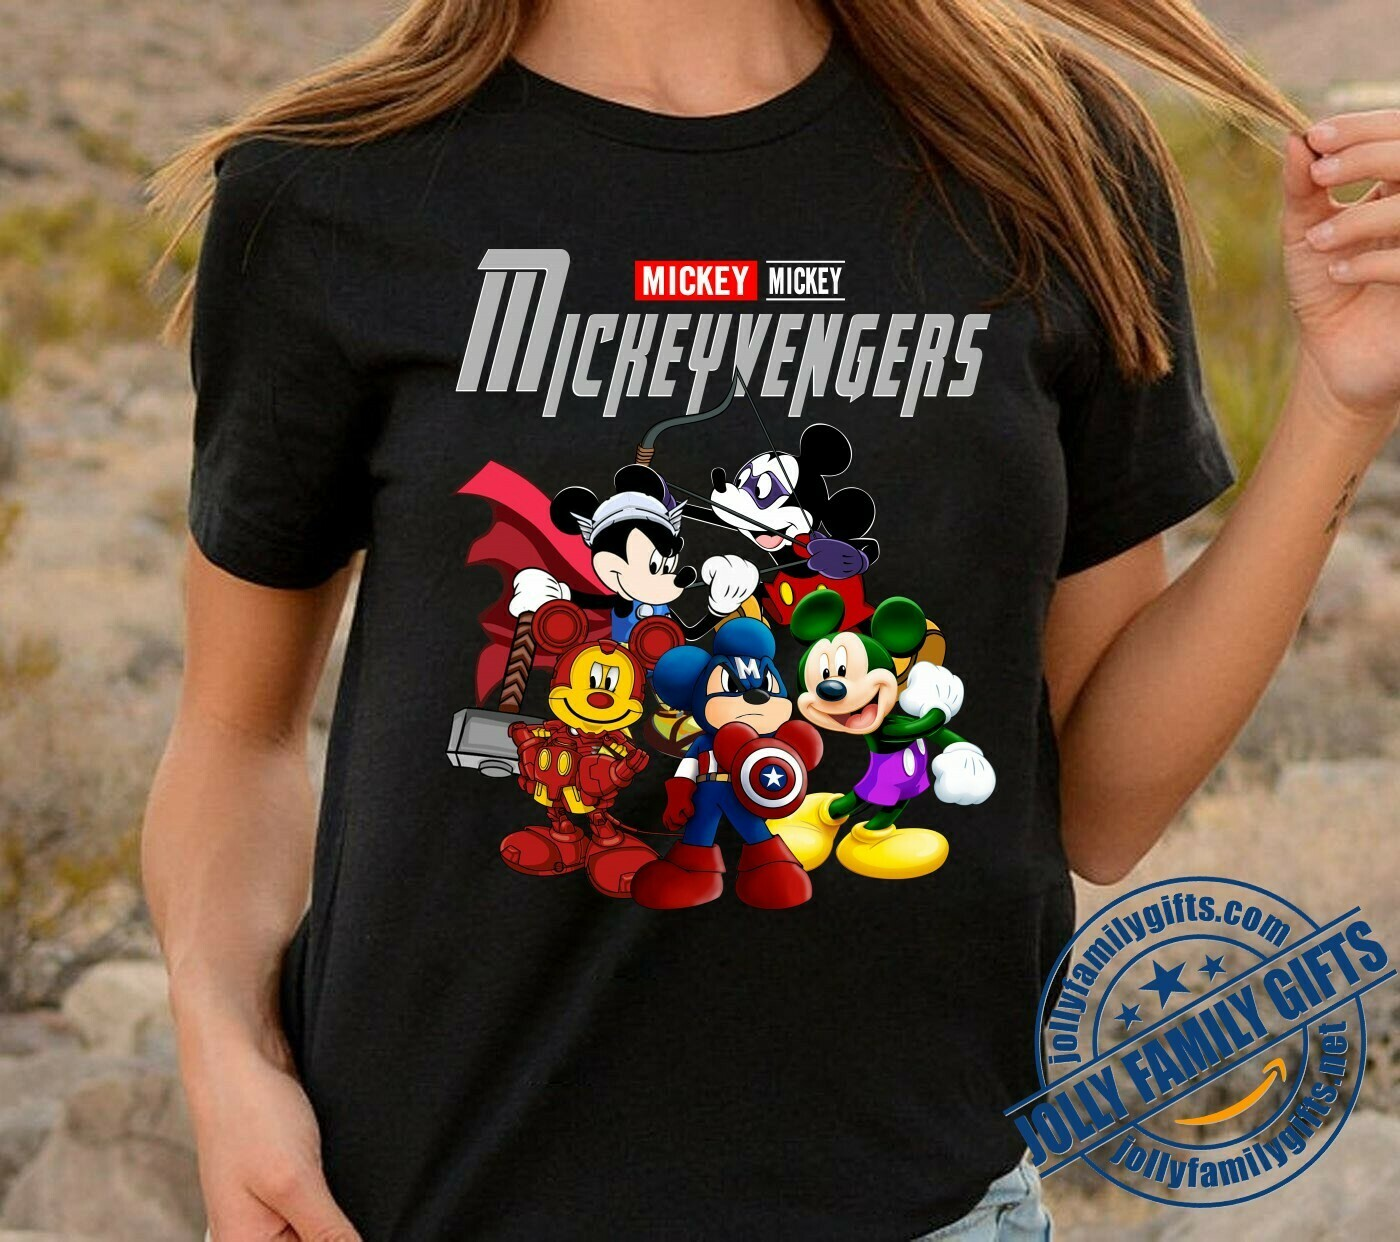 Disney Mickeyvengers Marvel Avengers Endgame gift for Kid Men Women T-Shirt Hoodie Sweatshirt Sweater Tee Kids Youth Gifts Jolly Family Gifts